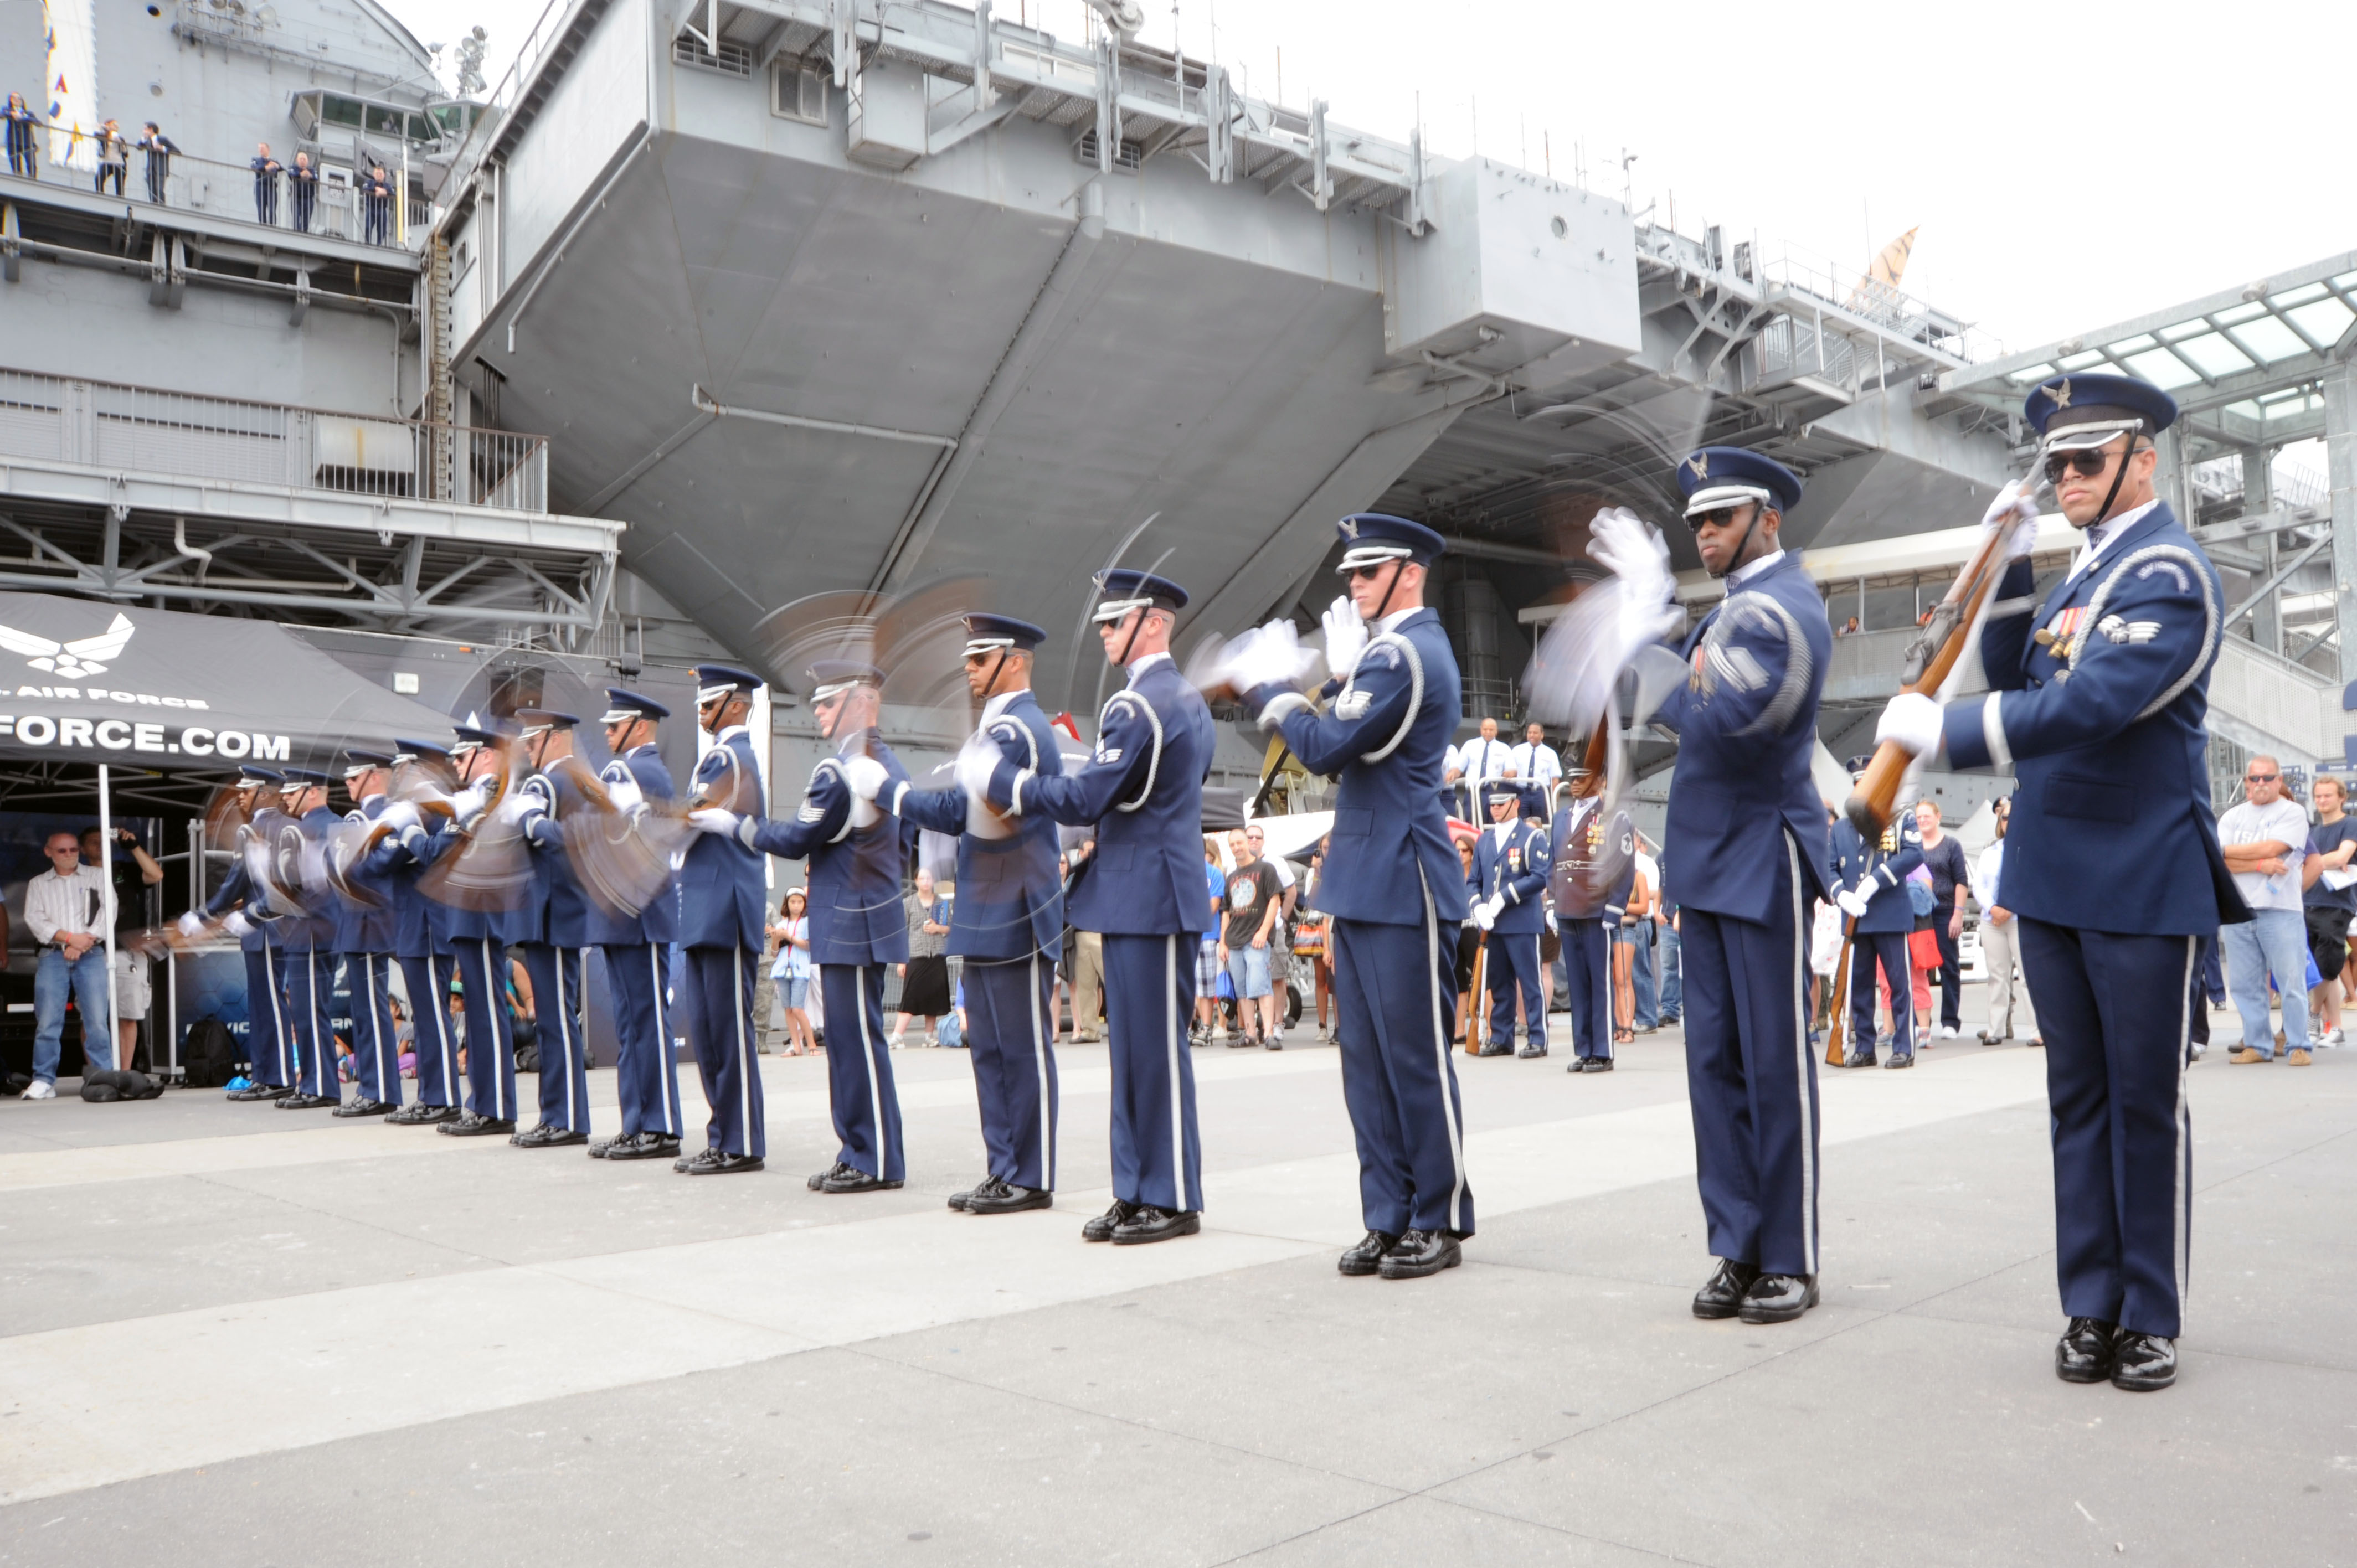 U.S. Air Force Drill Team Recruiting Video